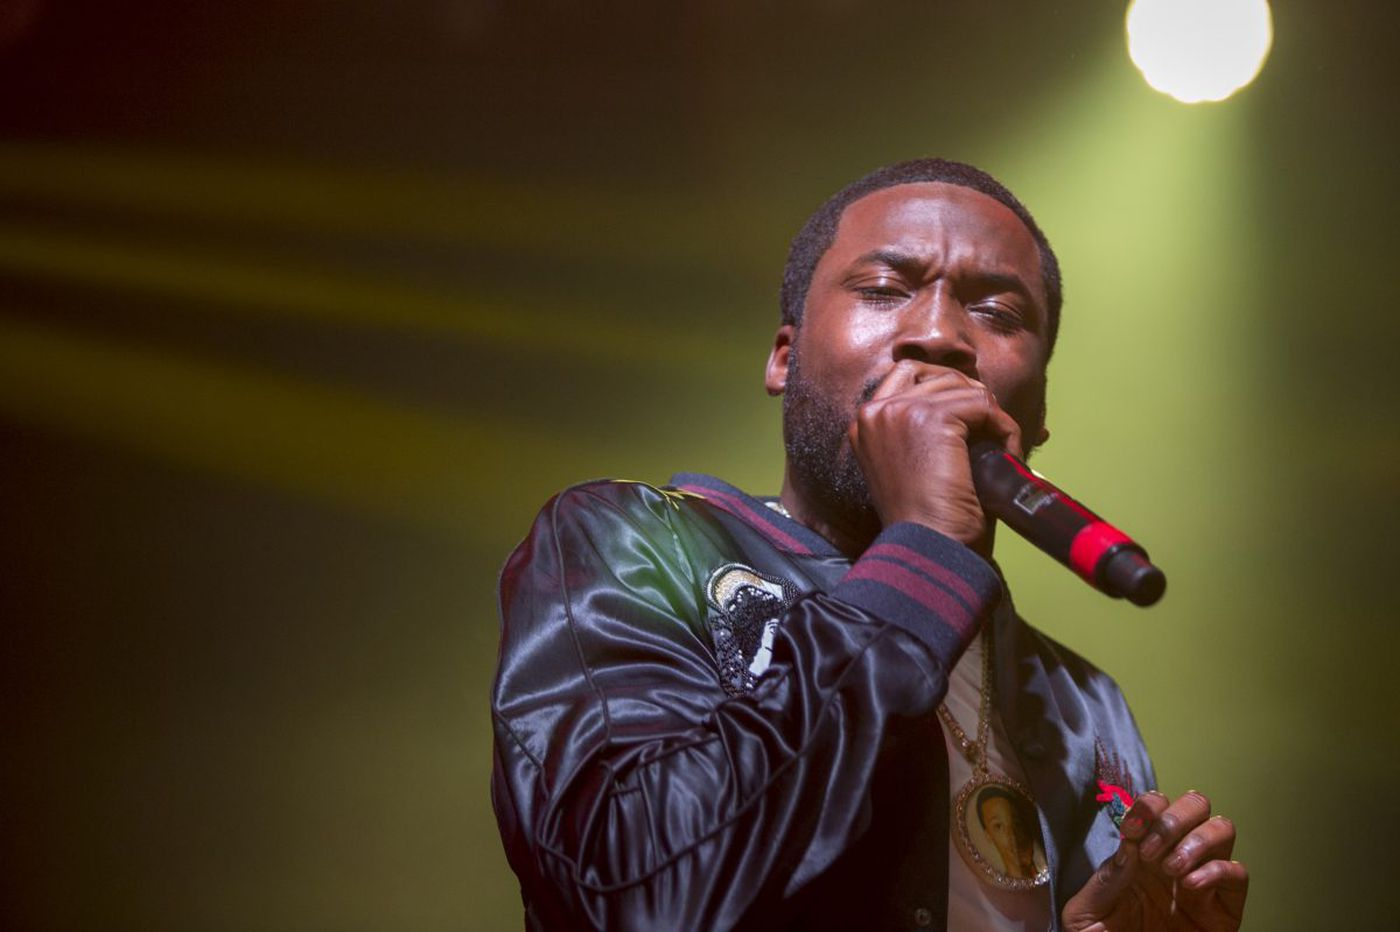 Meek Mill arrested, charged with reckless endangerment in New York City